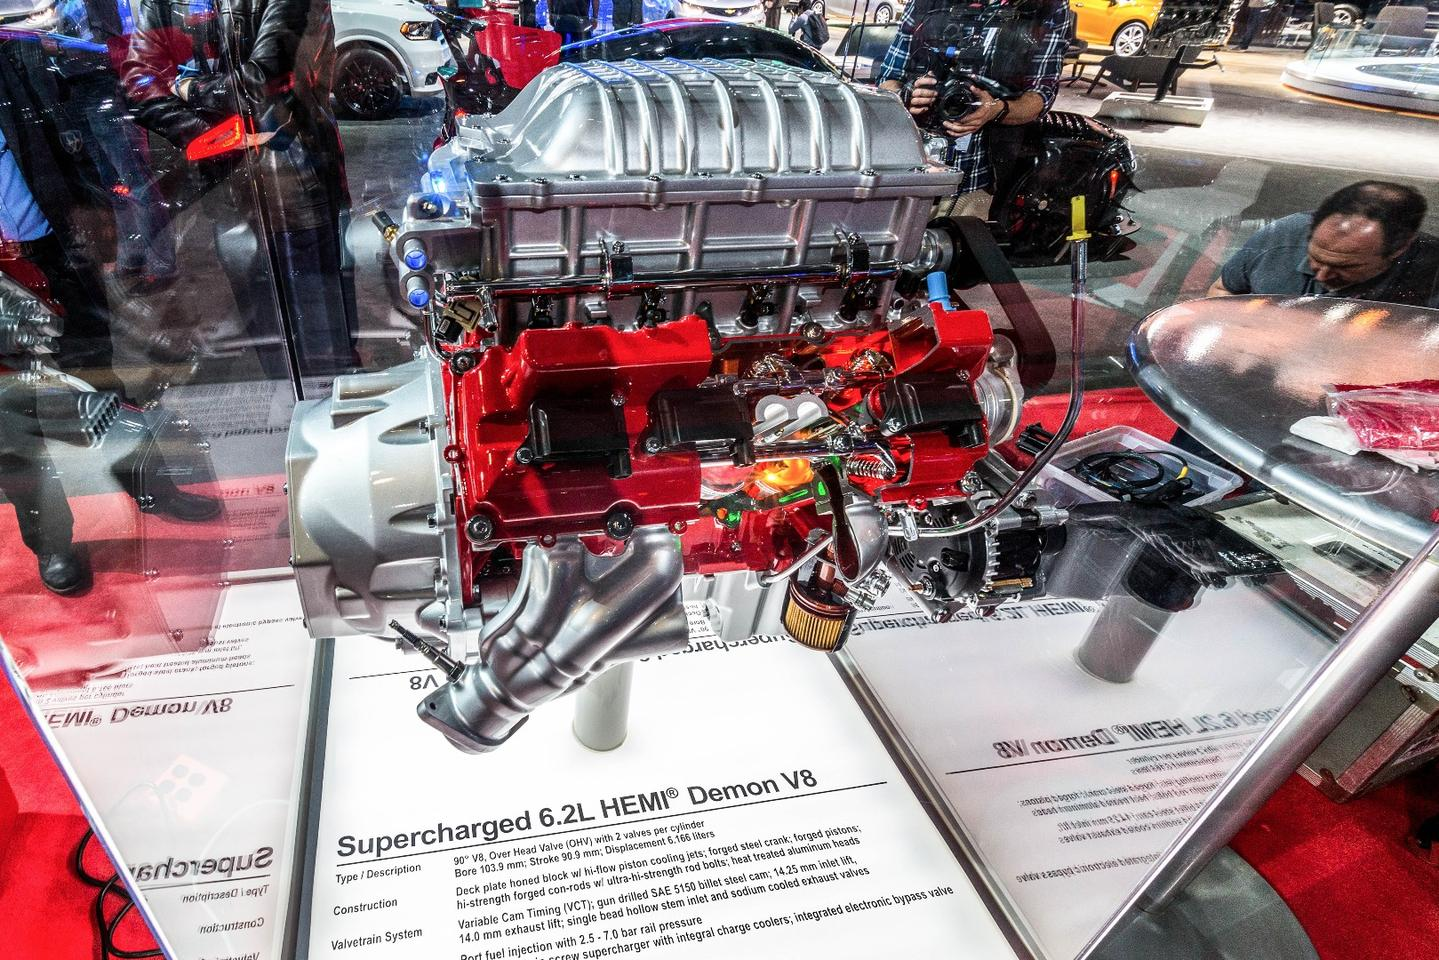 The beating heart of the Dodge Demon